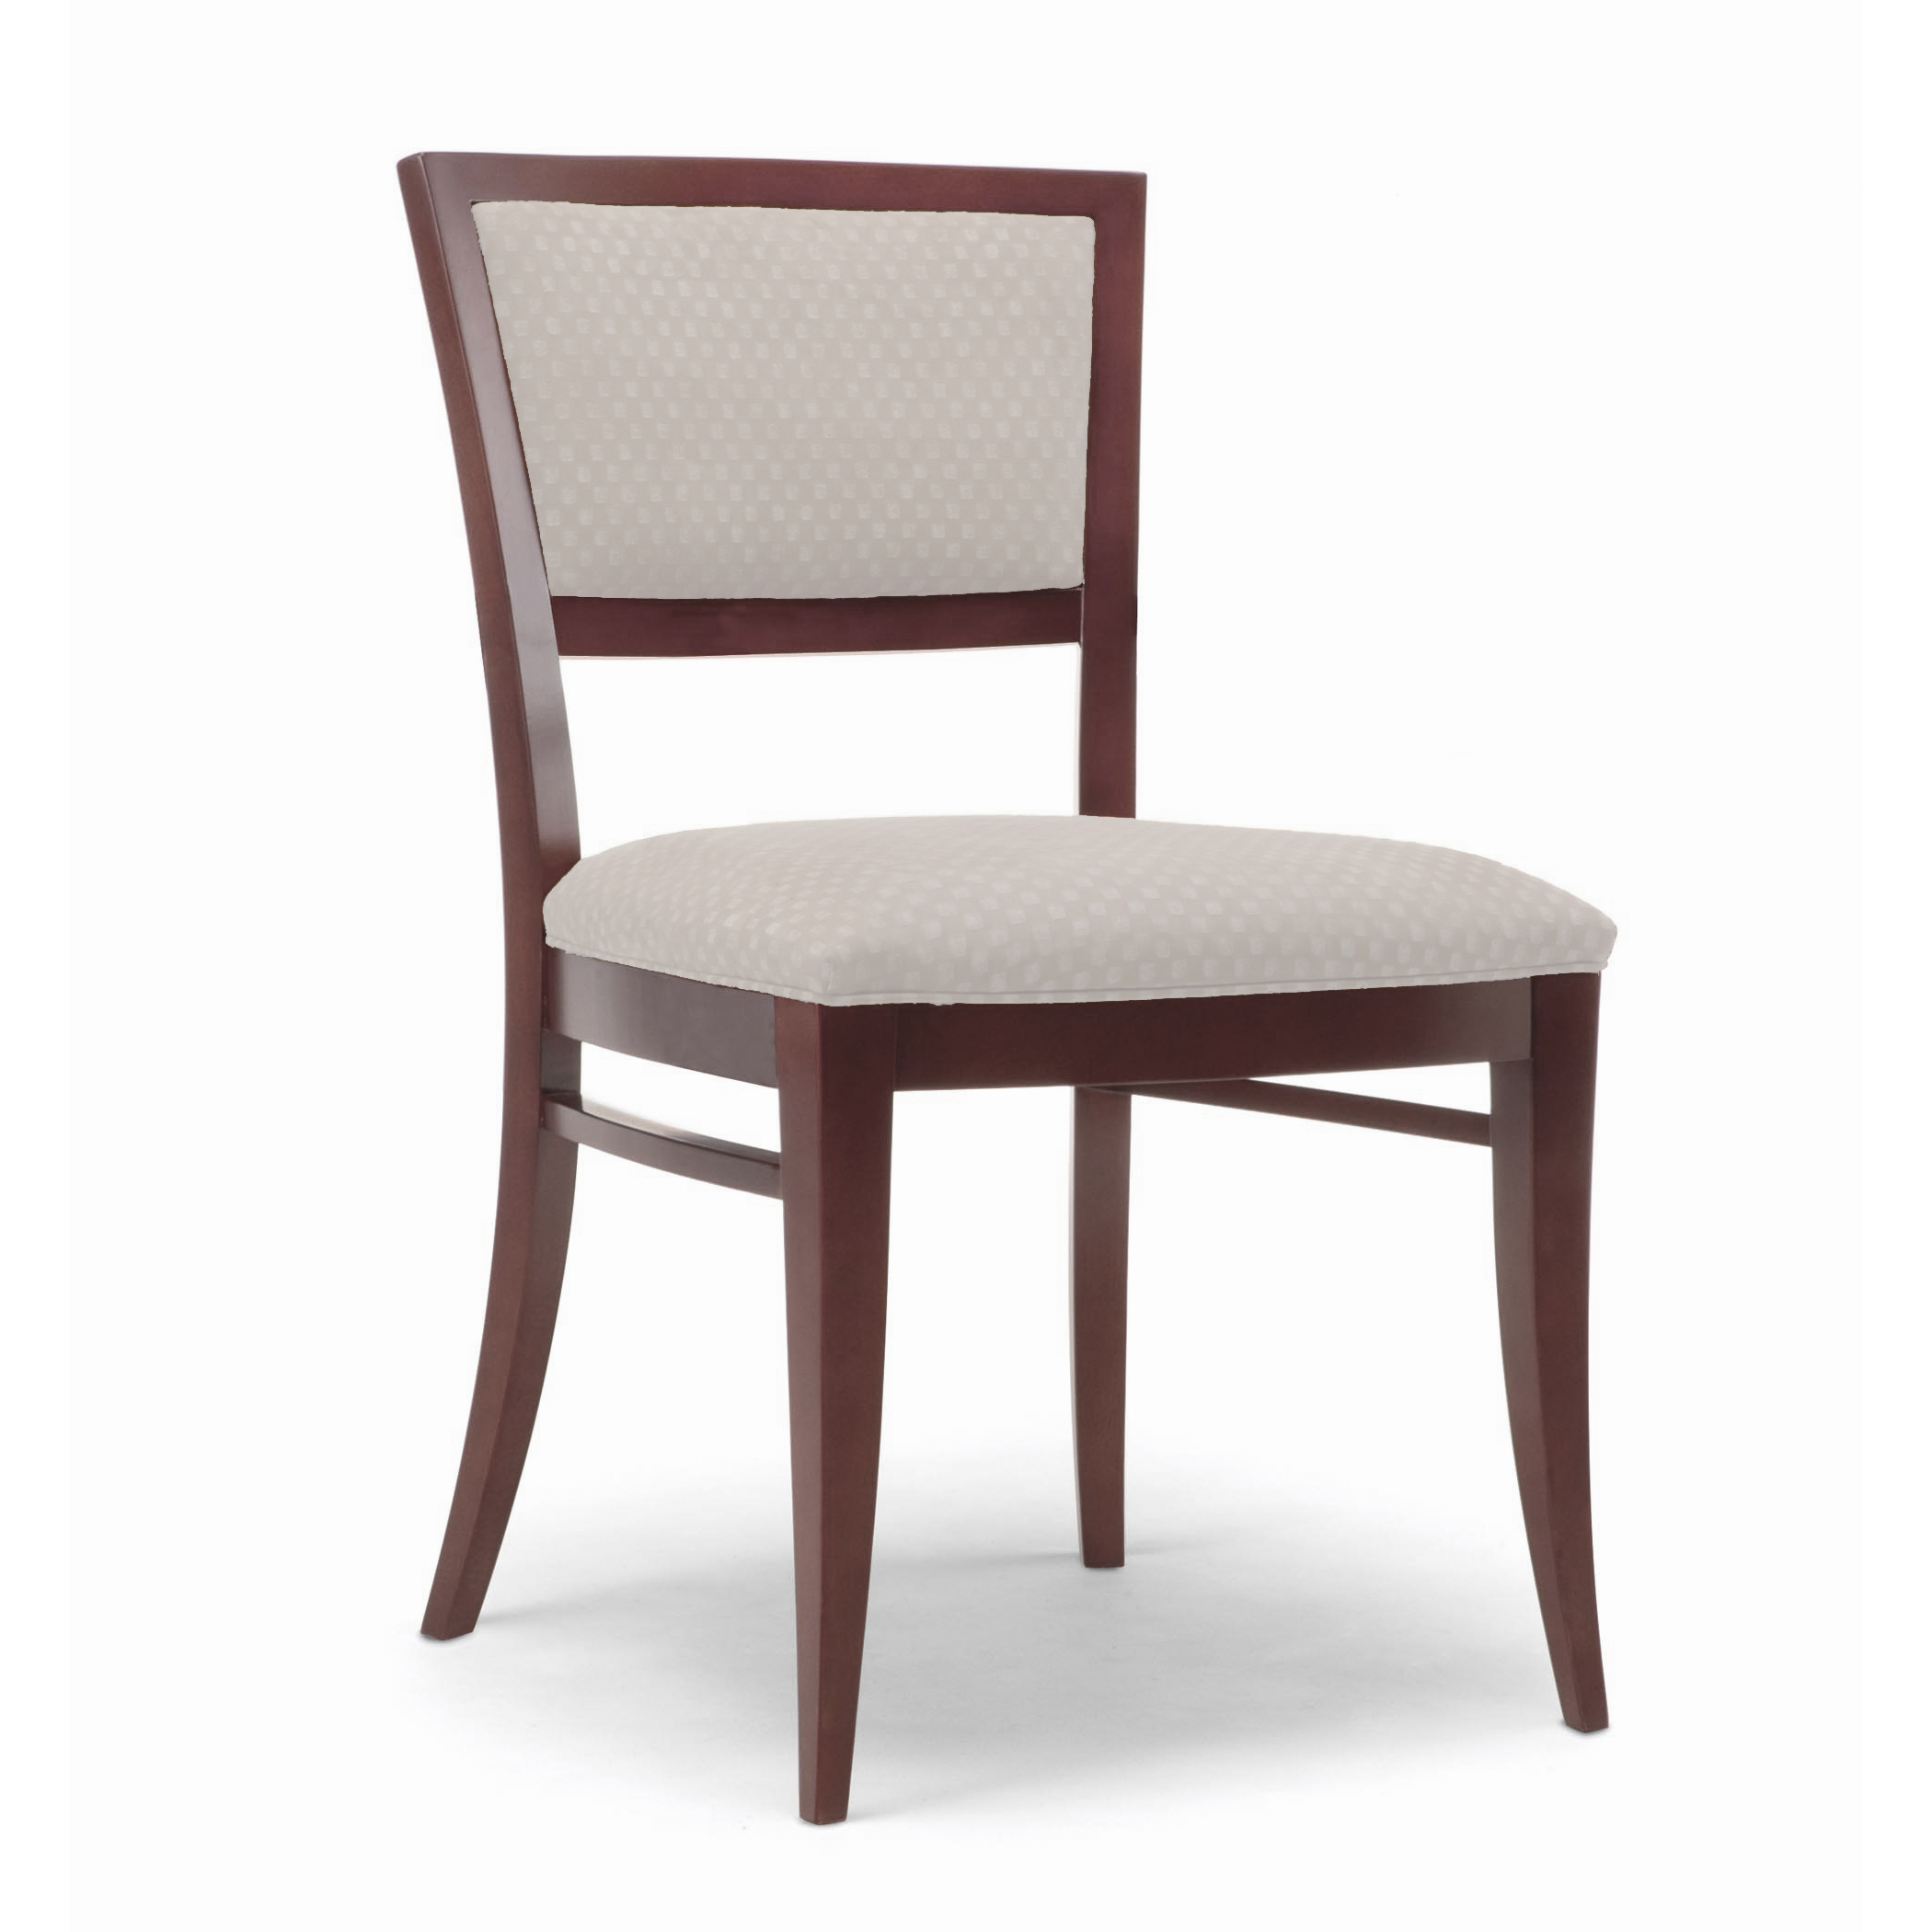 Beau 4126 Wood Side Chair. SHARE. LOW RES HI RES FAVORITES PRINT